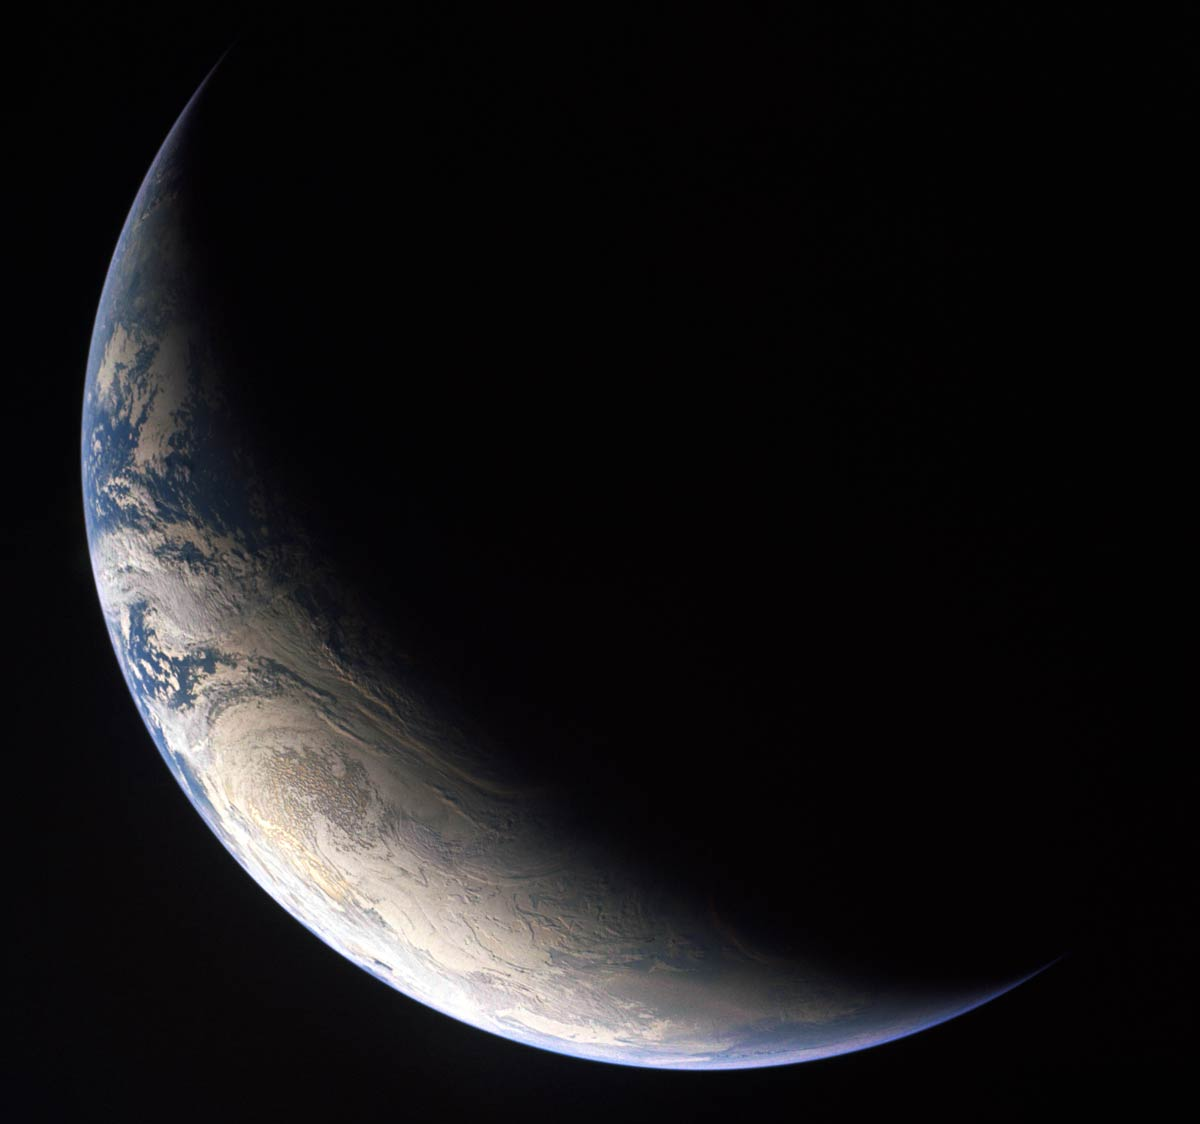 Apollo 4 image